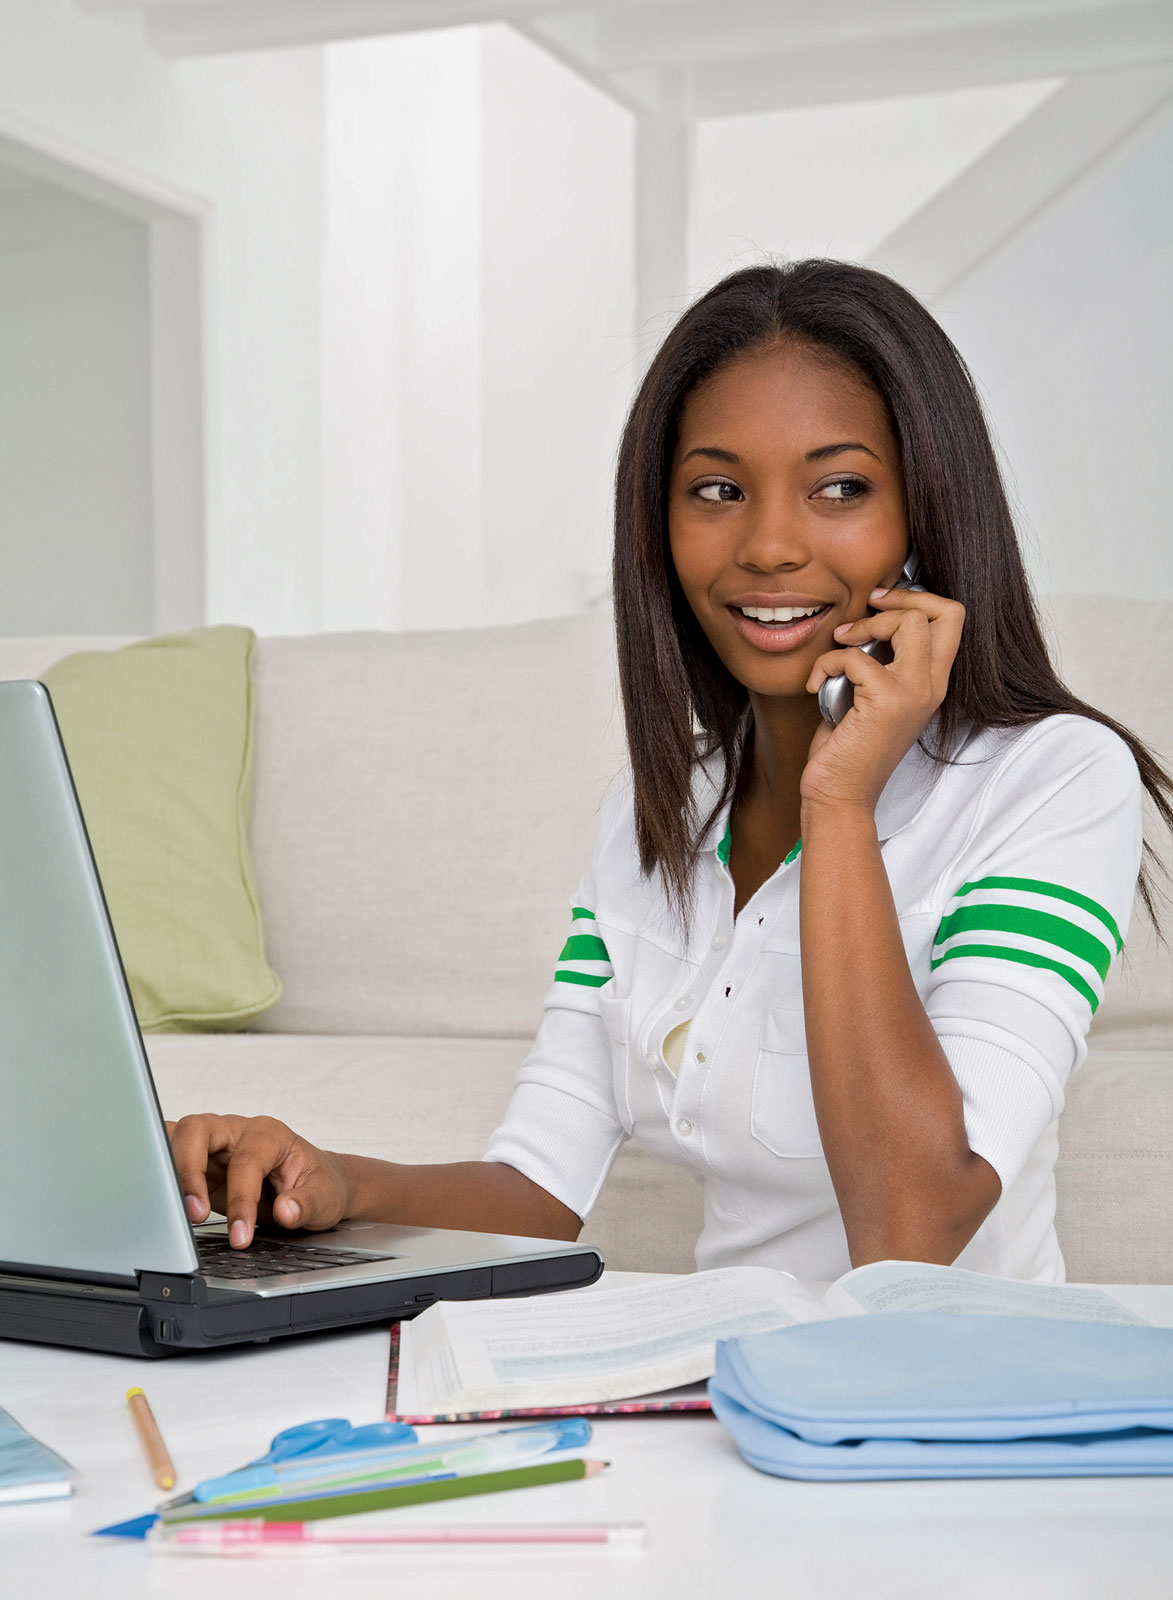 teenage girl on cell phone and laptop